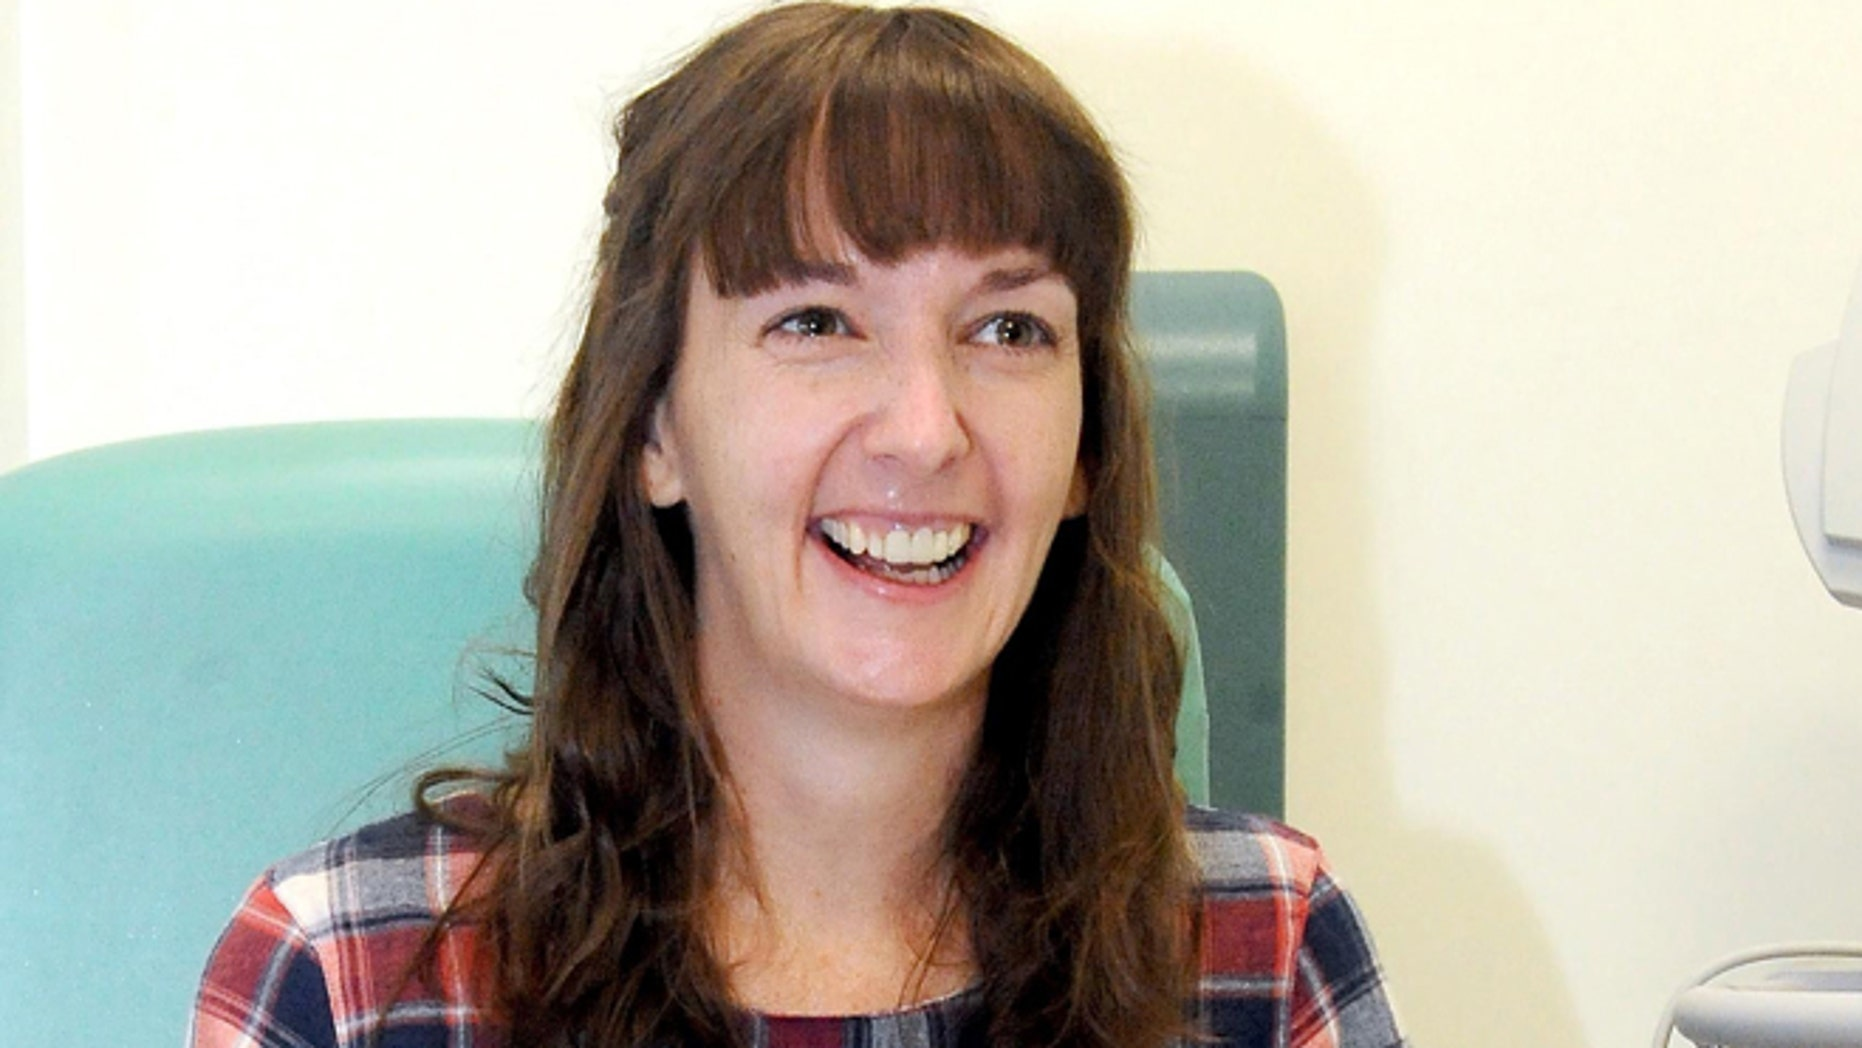 In this file photo, Pauline Cafferkey, a nurse who contracted Ebola while working in Sierra Leone, smiles in the Royal Free Hospital in London.